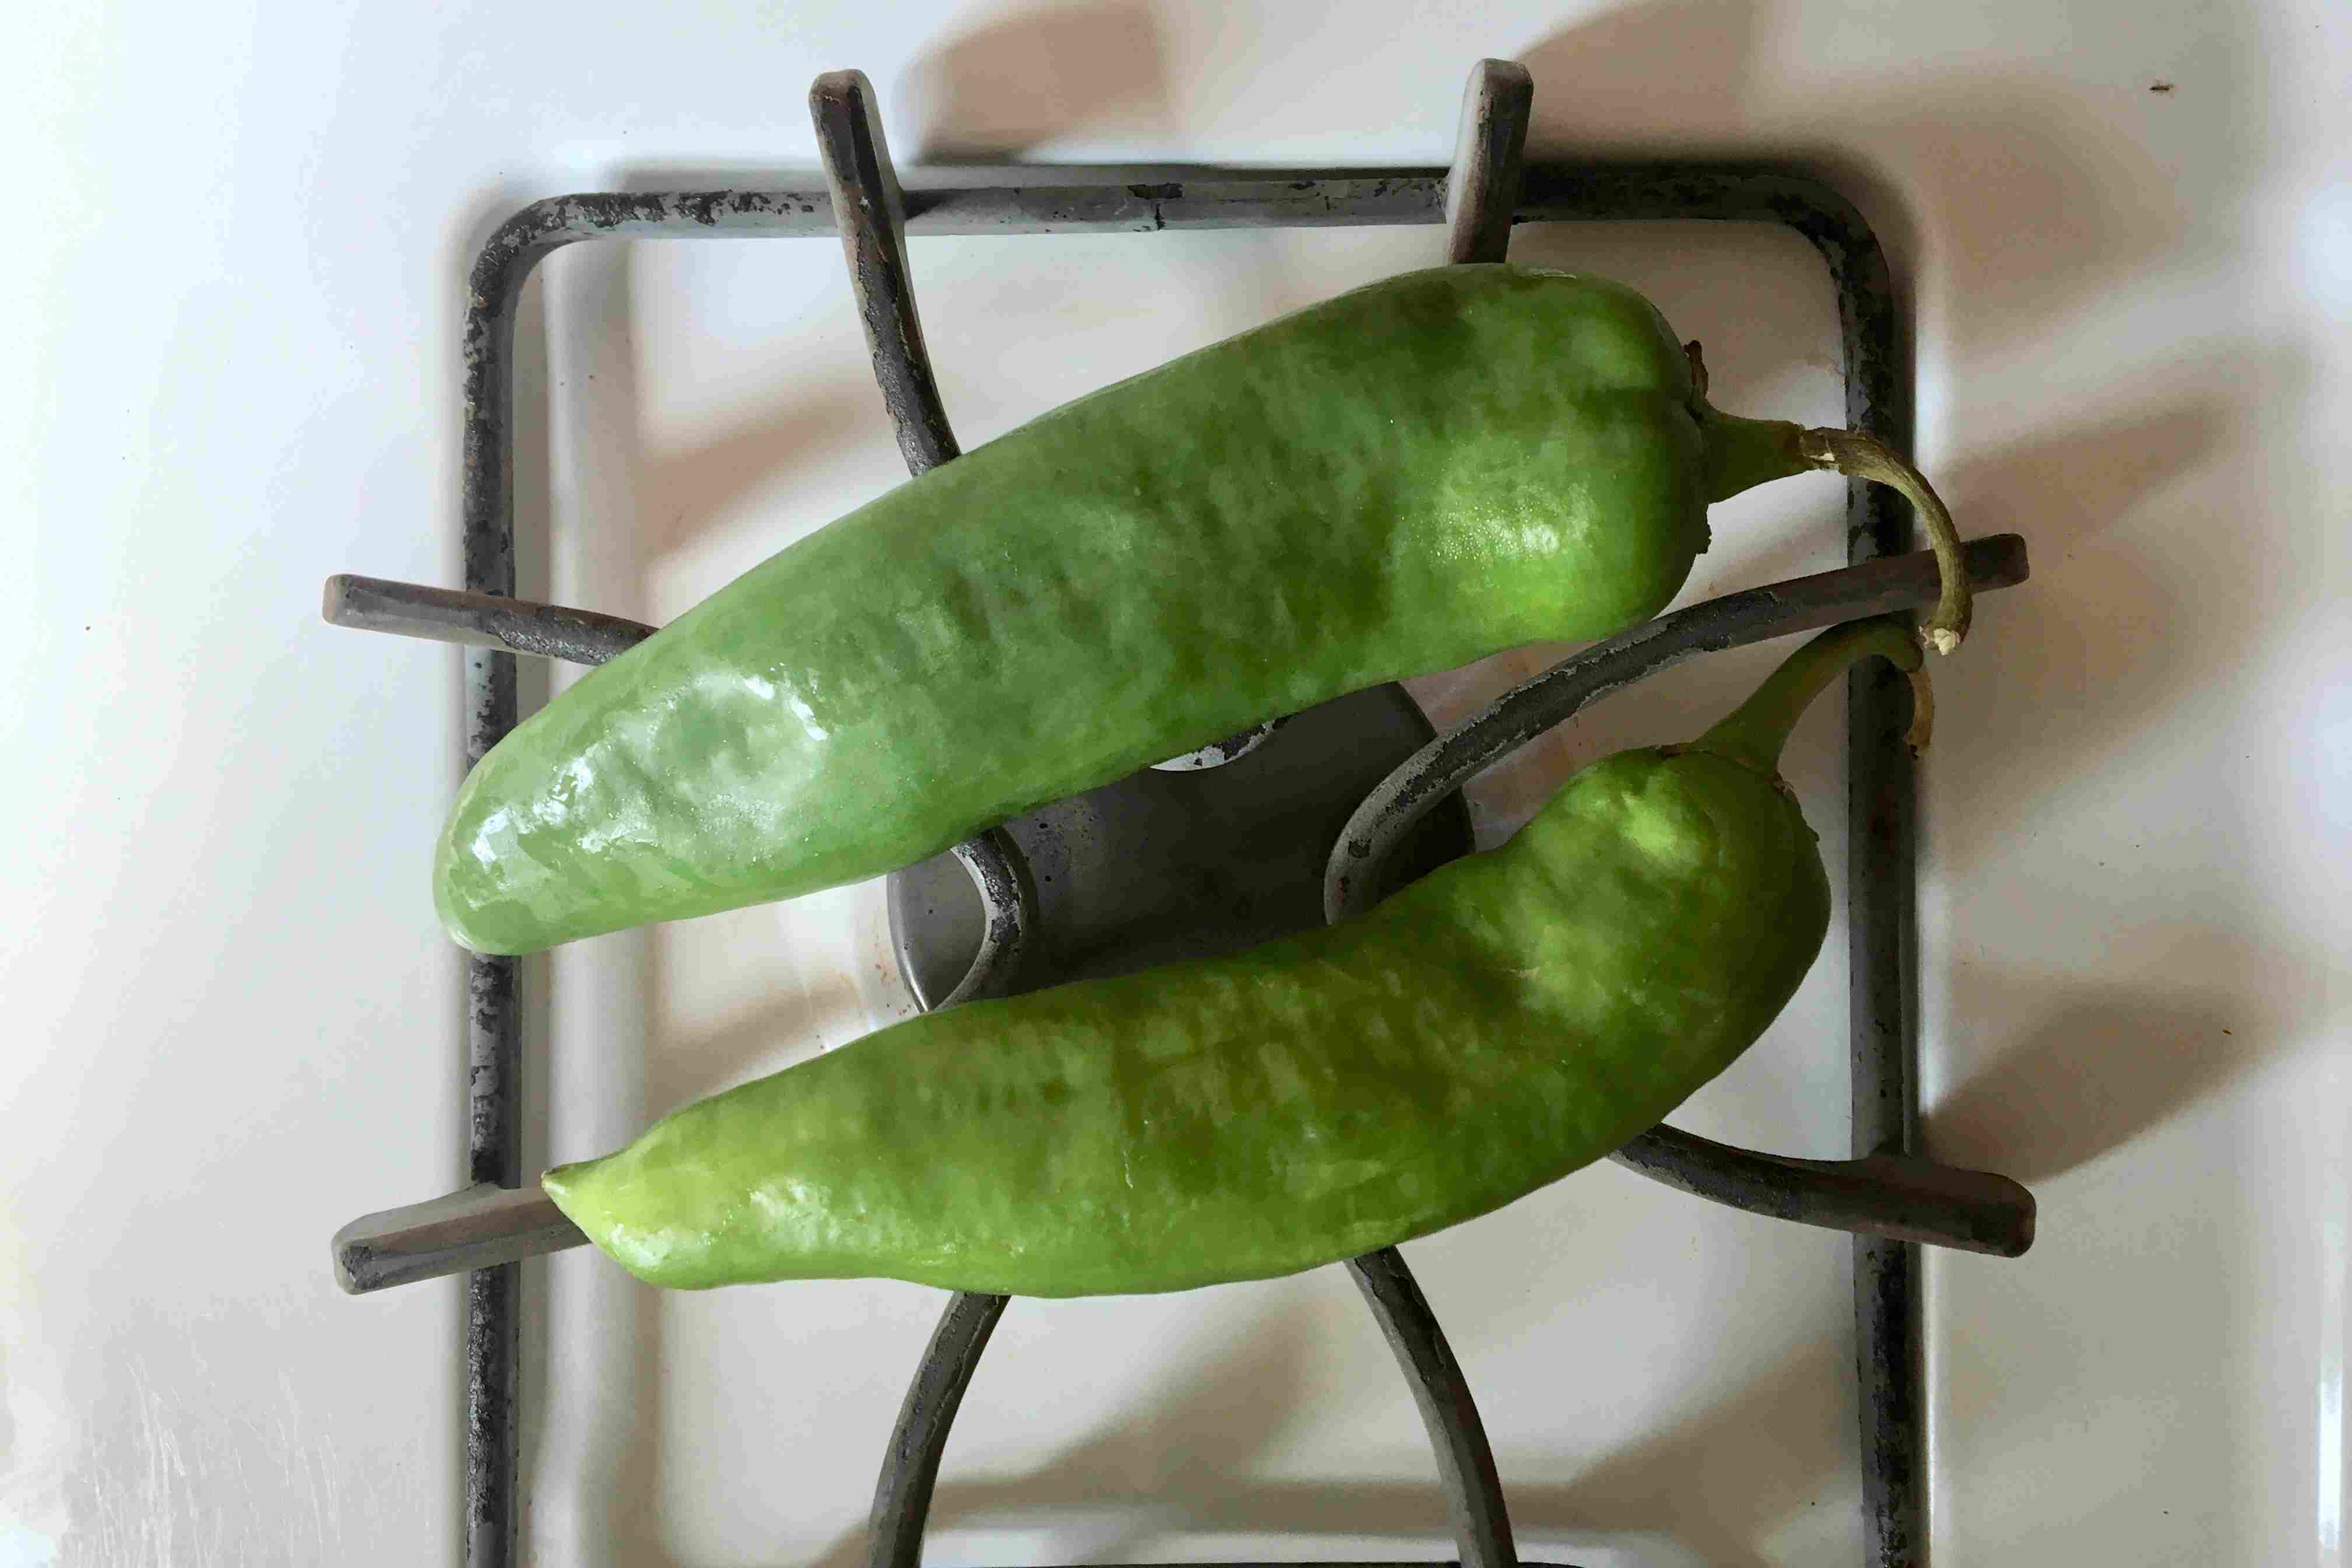 Green chiles over a burner